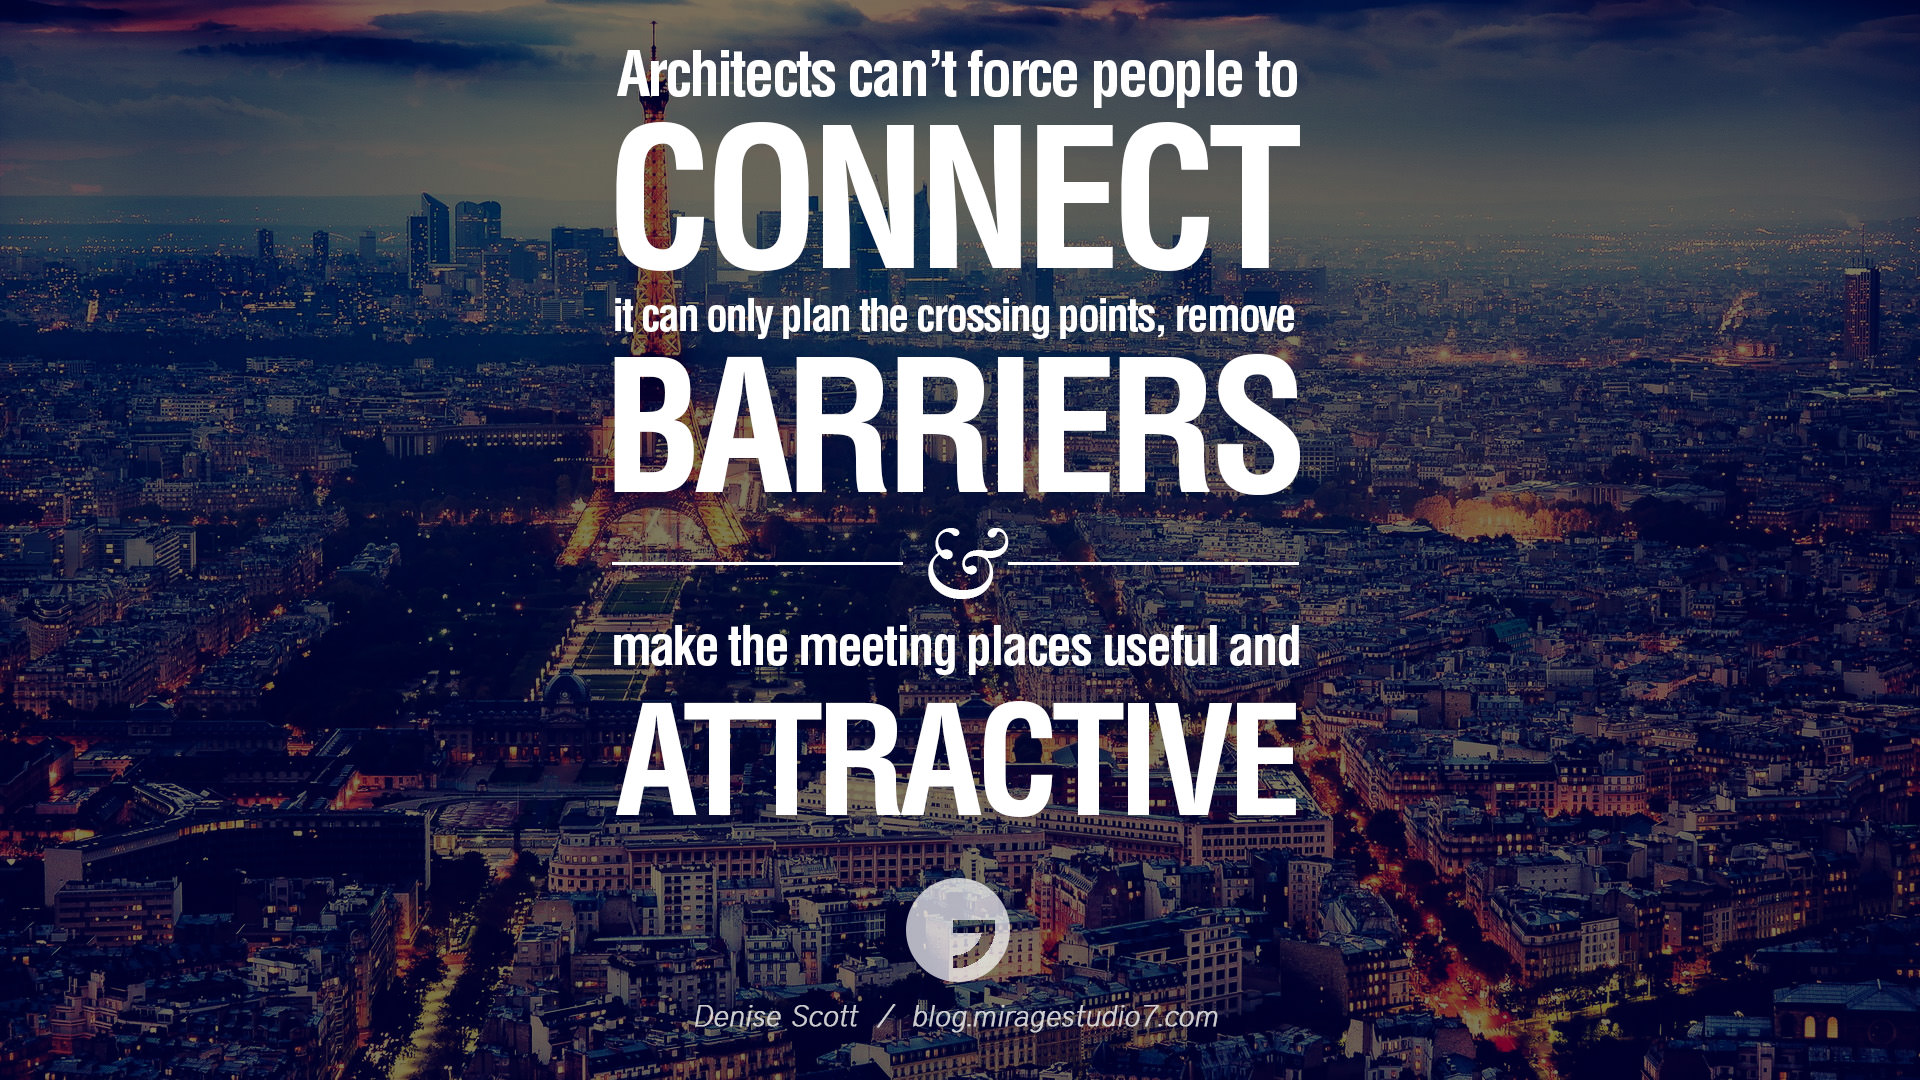 quotes architecture famous architect architects contact force light attractive quotesgram general info quotemaster